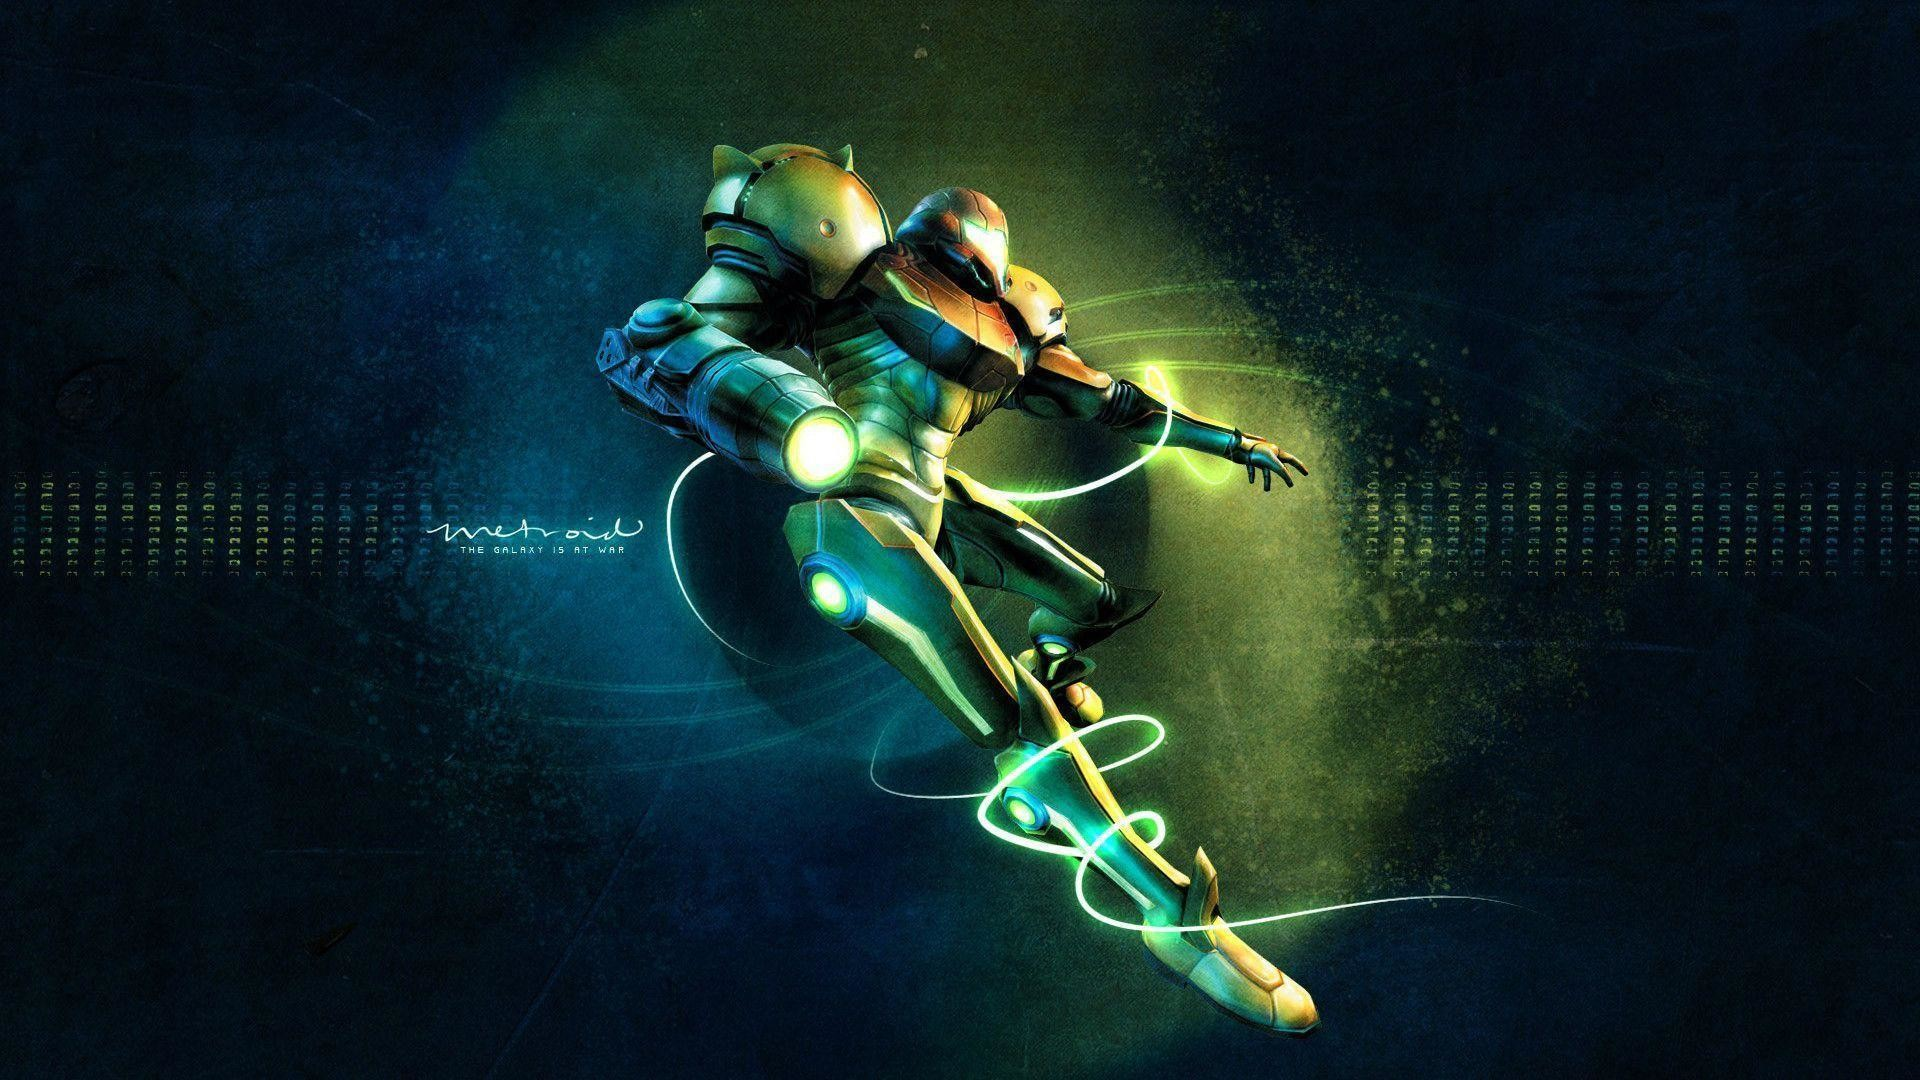 Wallpapers For > Metroid Fusion Wallpaper 1920×1080